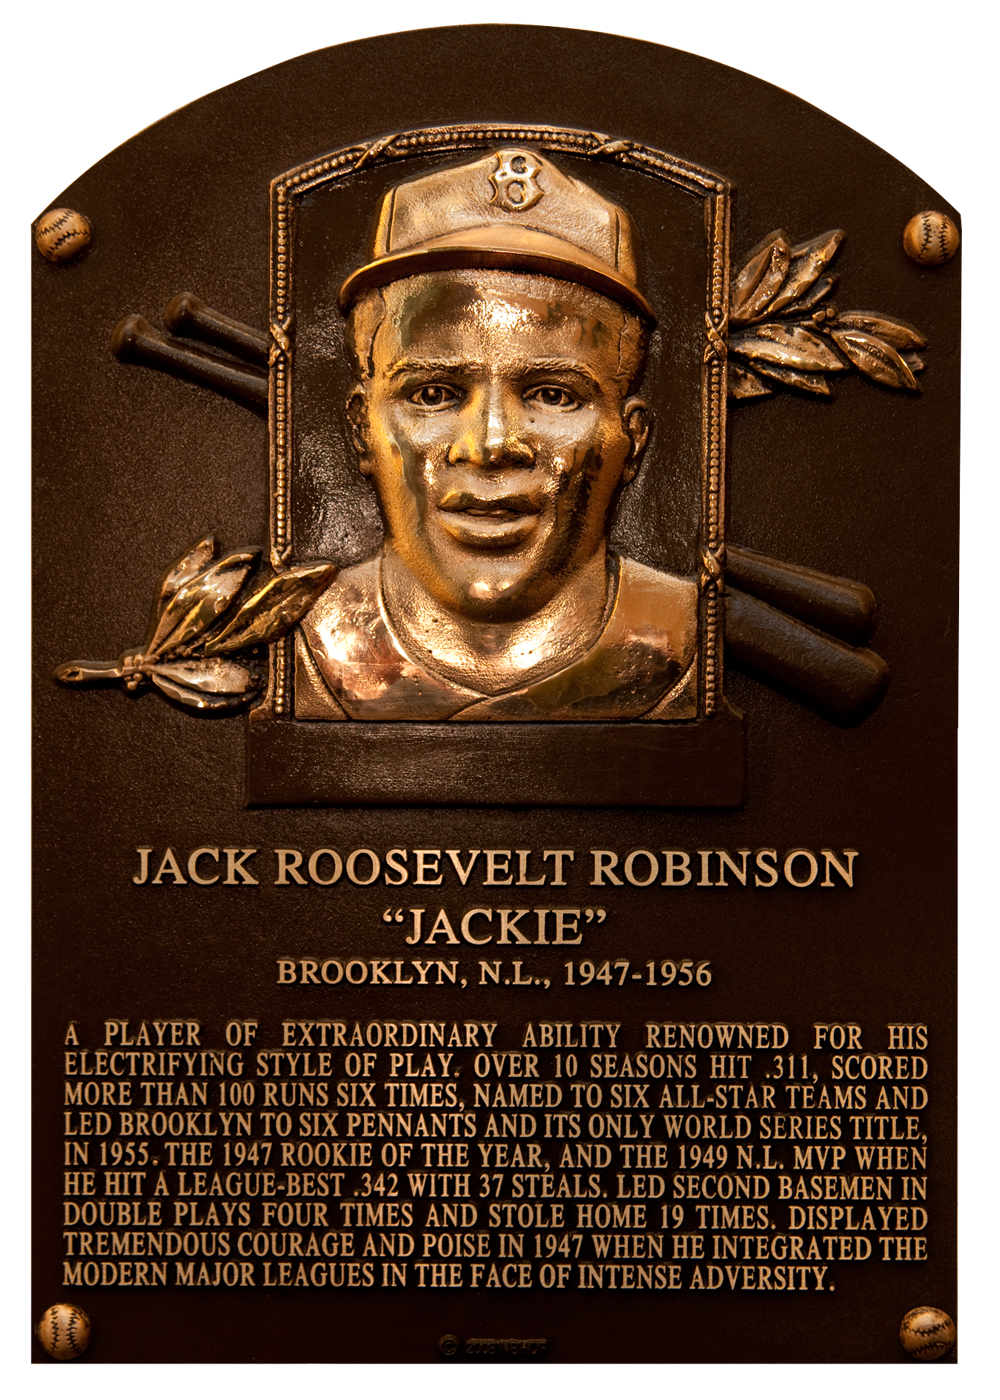 the life contributions and baseball career of jackie robinson Conclusion all in all jackie robinson's life was full of hardship, racism and prejudice  he changed not only professional baseball forever,.